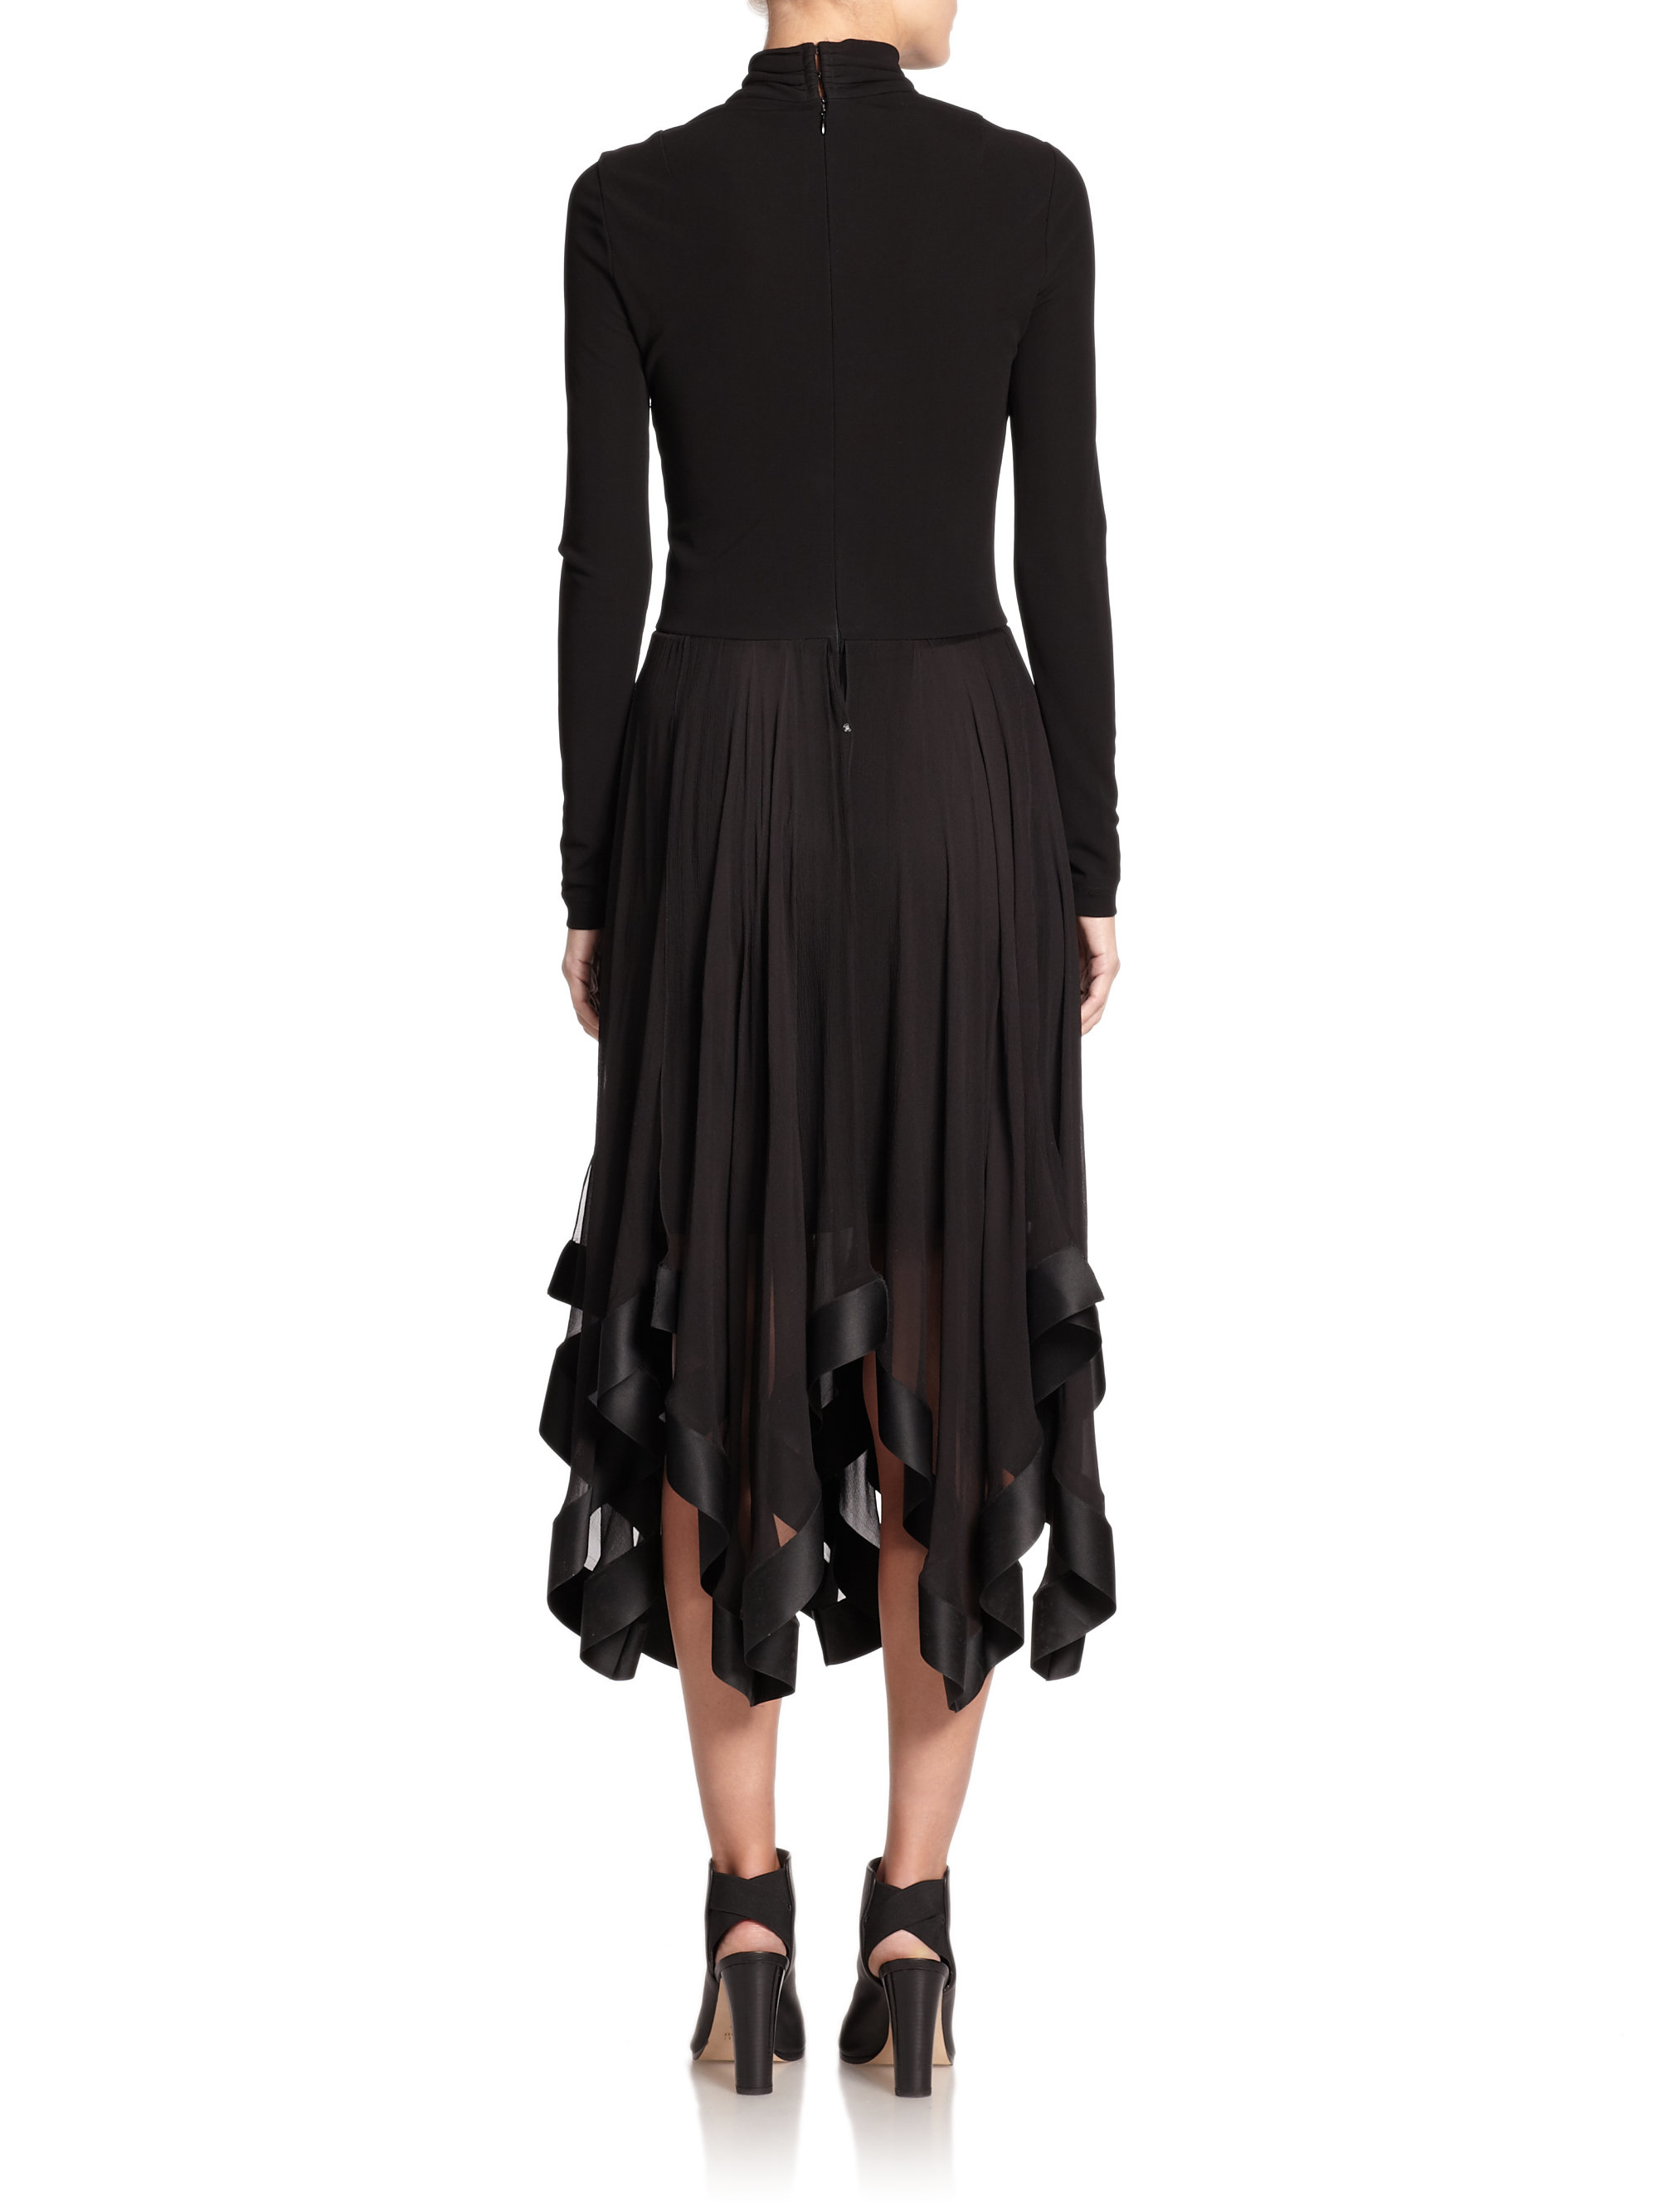 Lyst Nina Ricci Mixed Media Handkerchief Hem Dress In Black